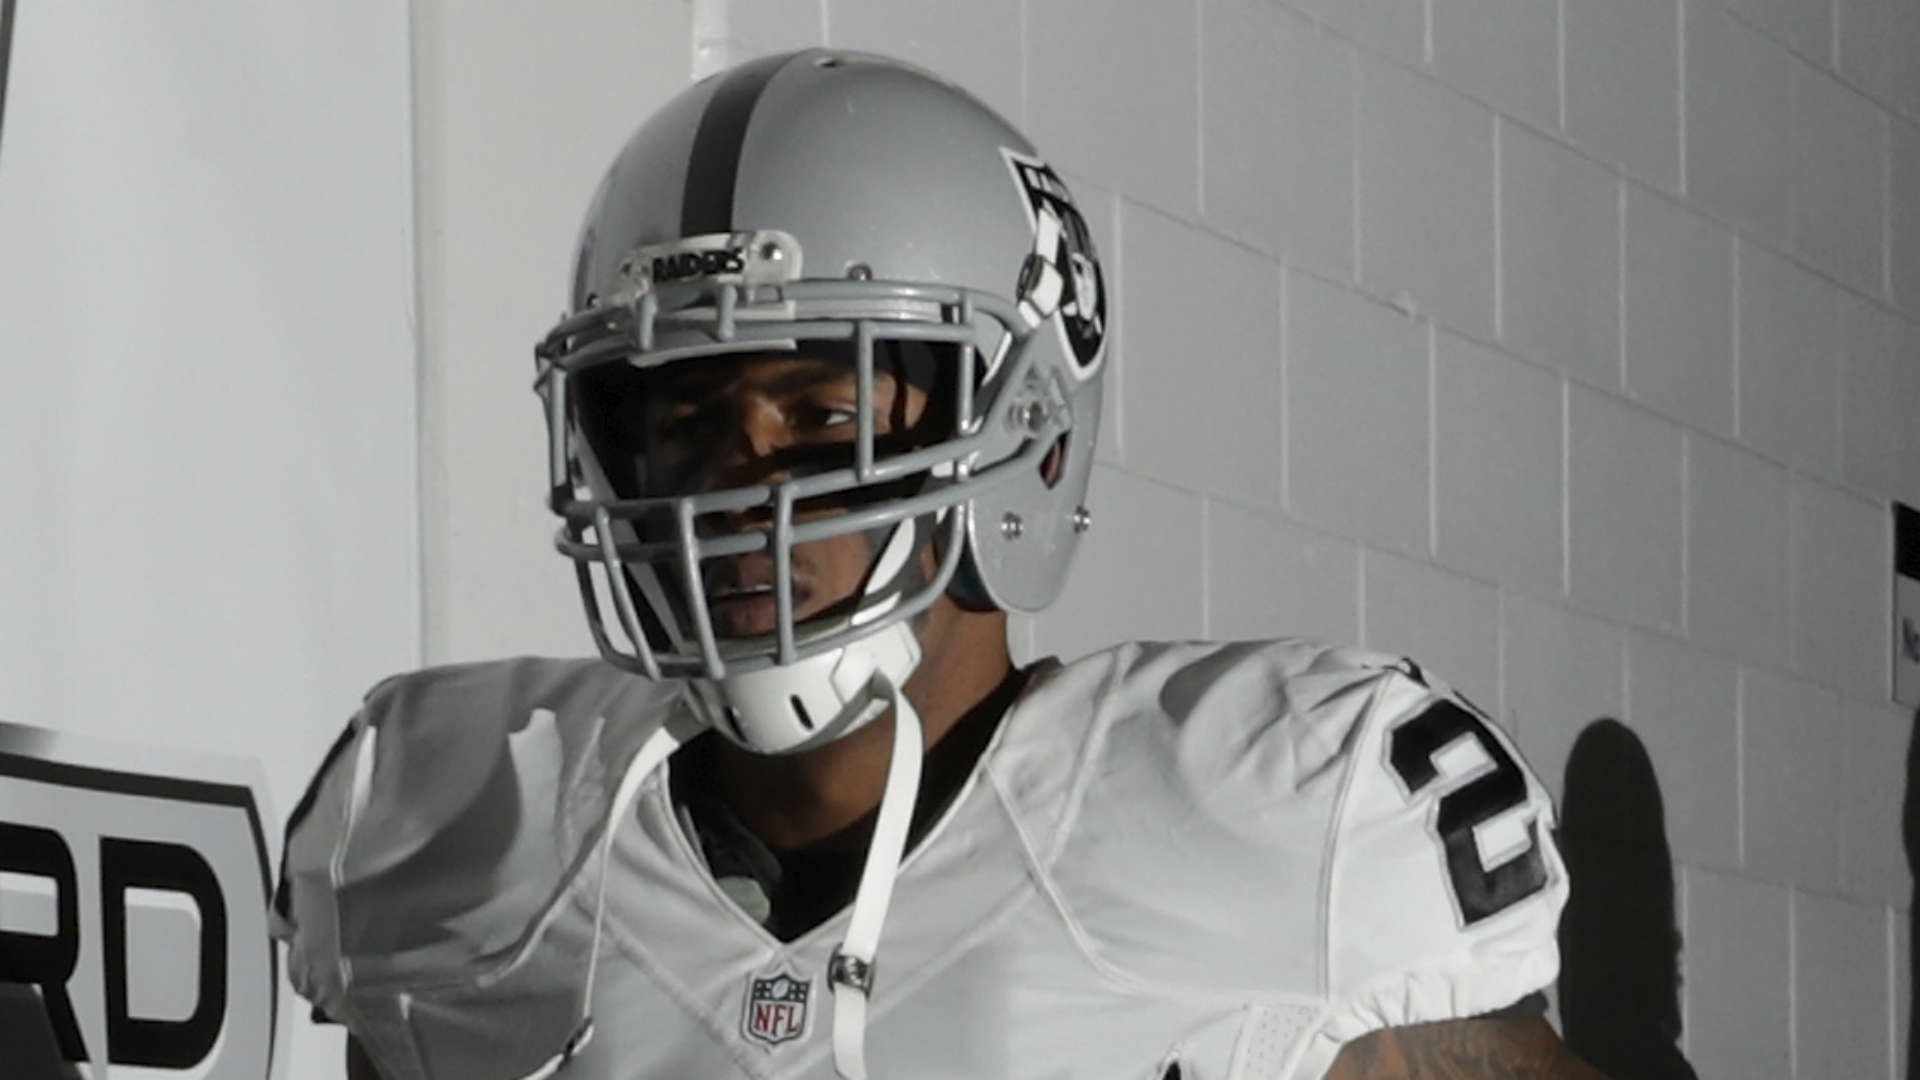 Aldon Smith pleads not guilty to domestic violence charges, report says